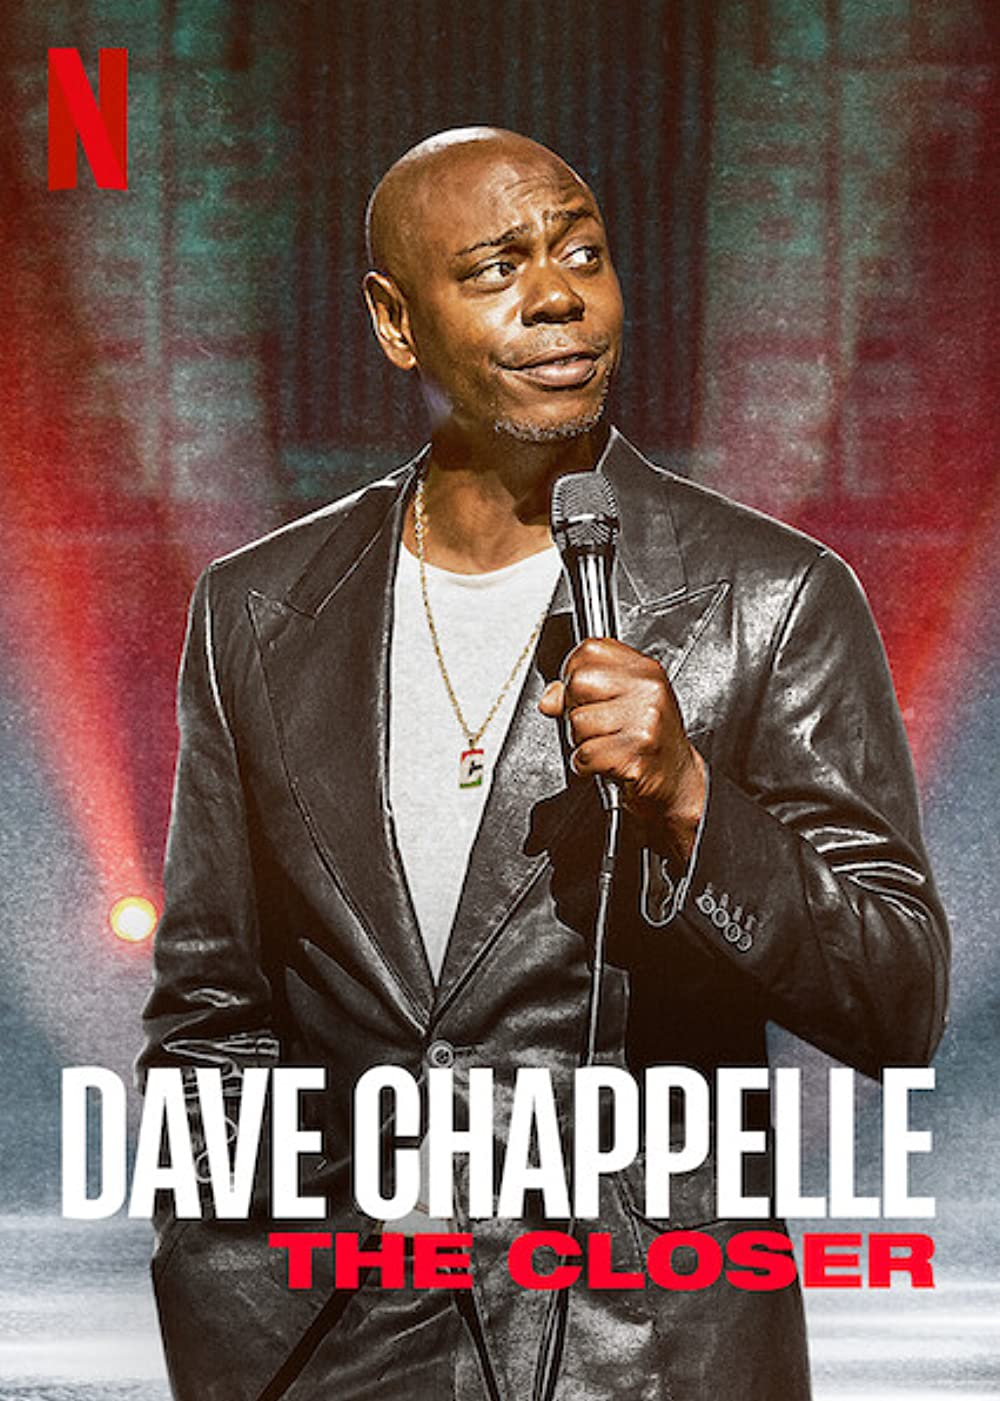 Dave Chappelle: The Closer| Watch Movies Online